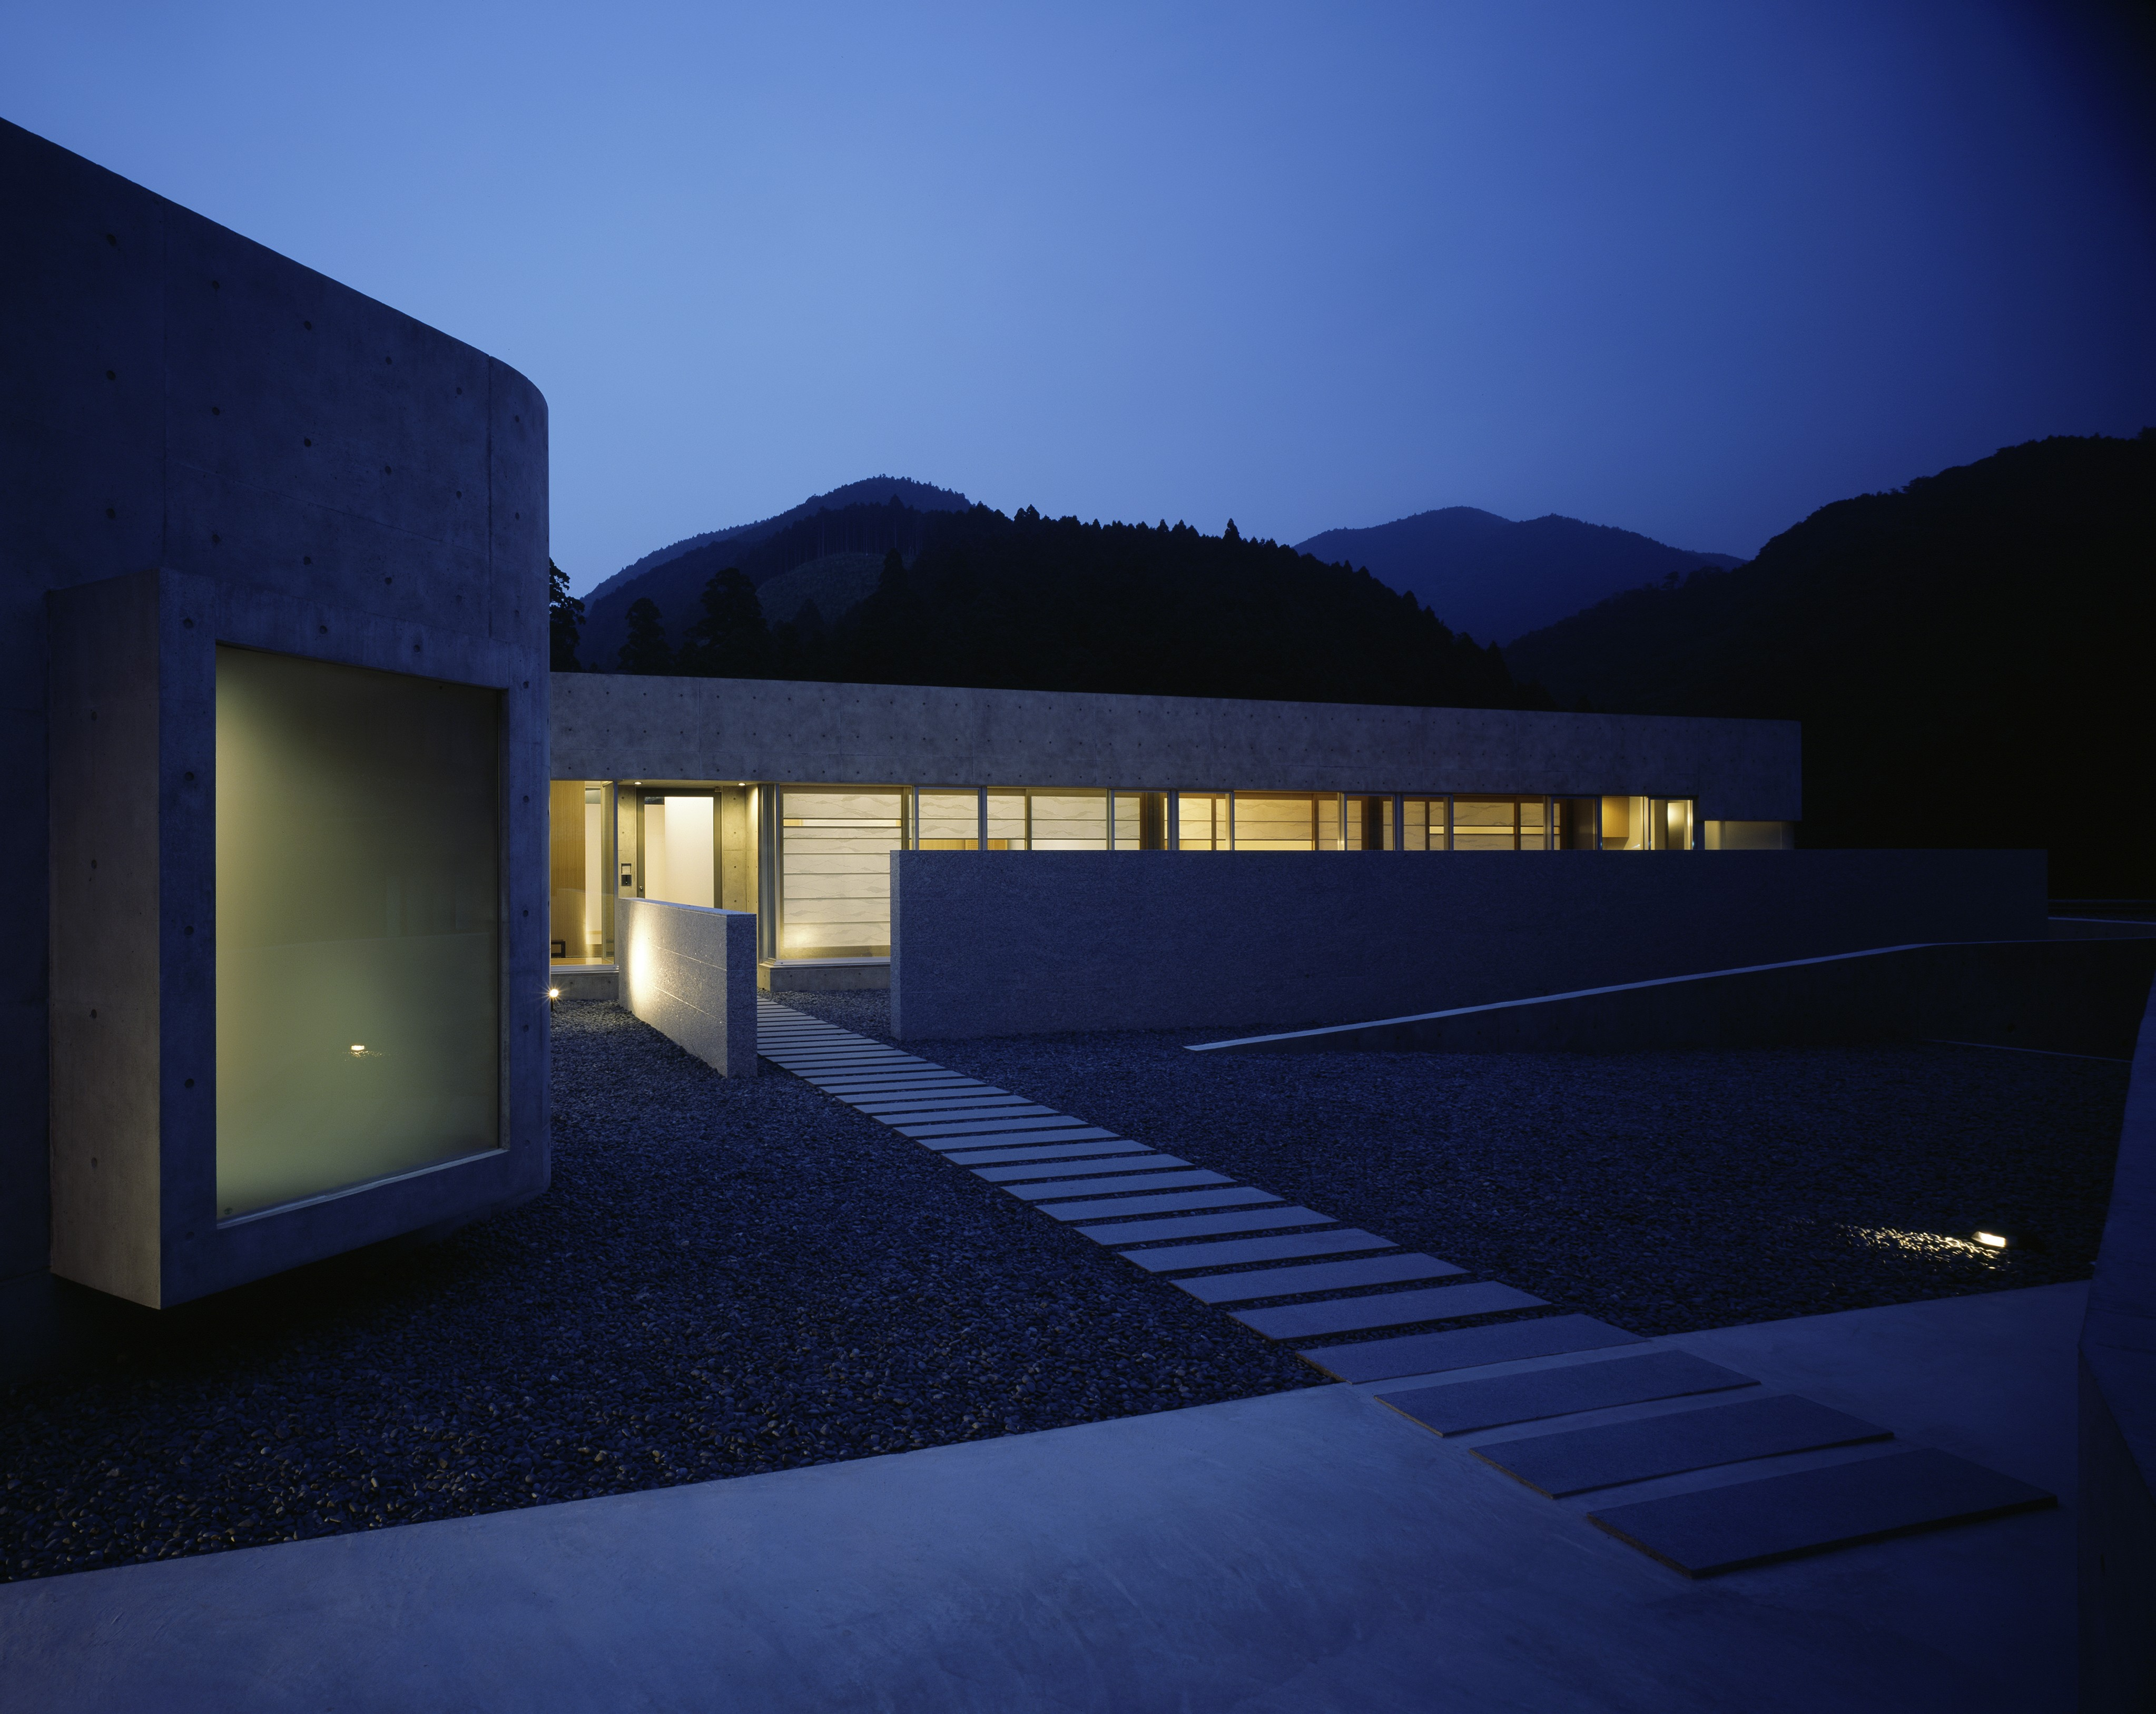 Seen at night, the interior glows brightly across the secluded patio space.